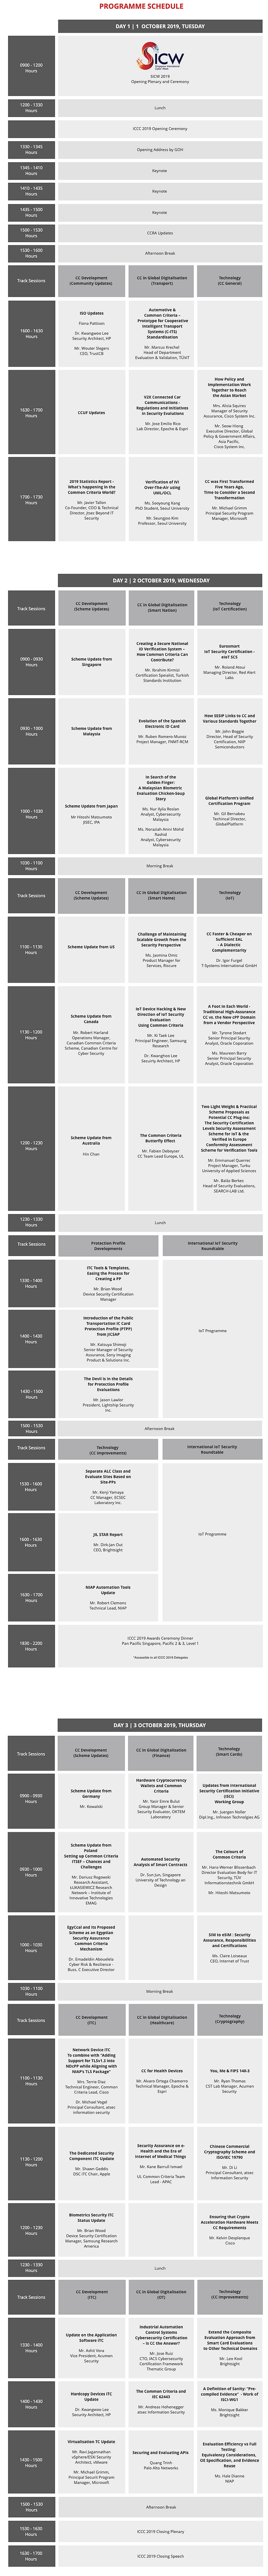 ICCC 2019 Programme Screenshot .png